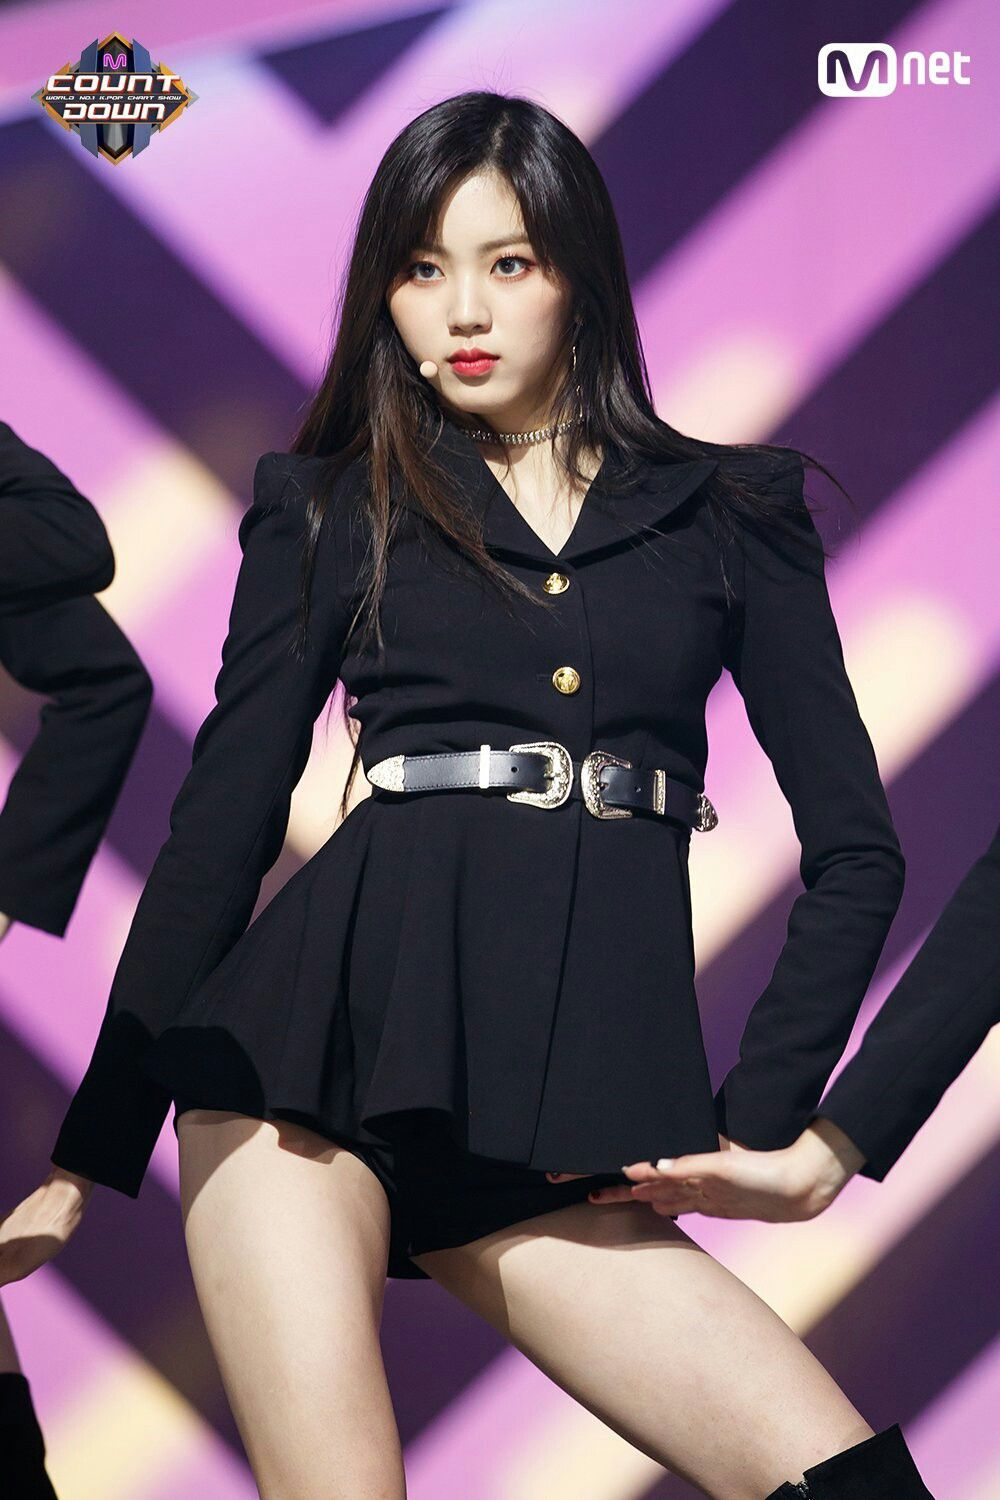 Pin By Cḣaeẏoṳṉḡ On Clc Kpop Outfits Stage Outfits Kpop Girls